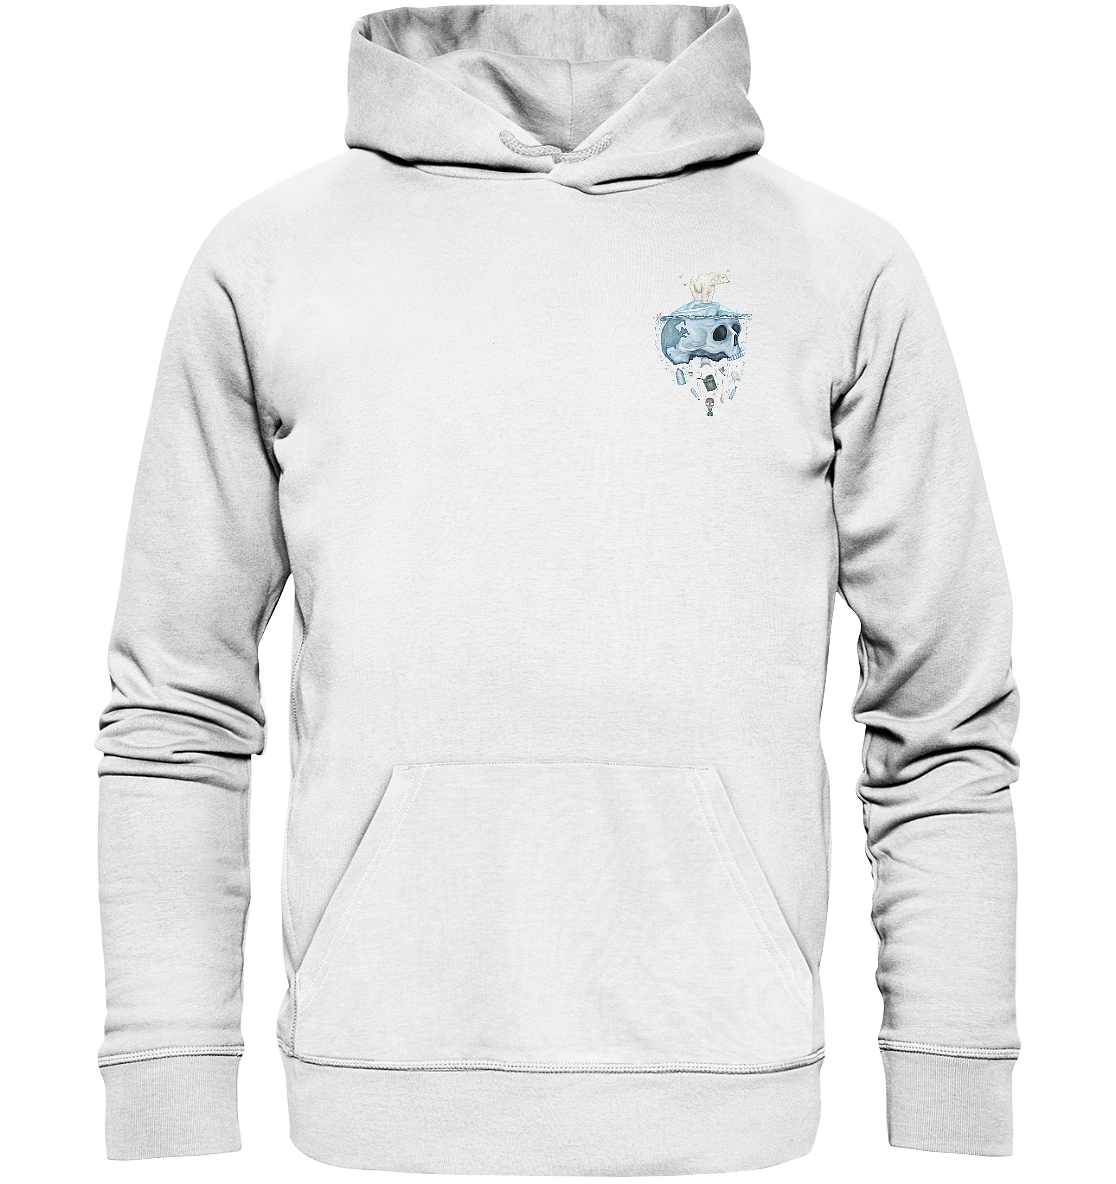 front-organic-hoodie-f8f8f8-1116x.png